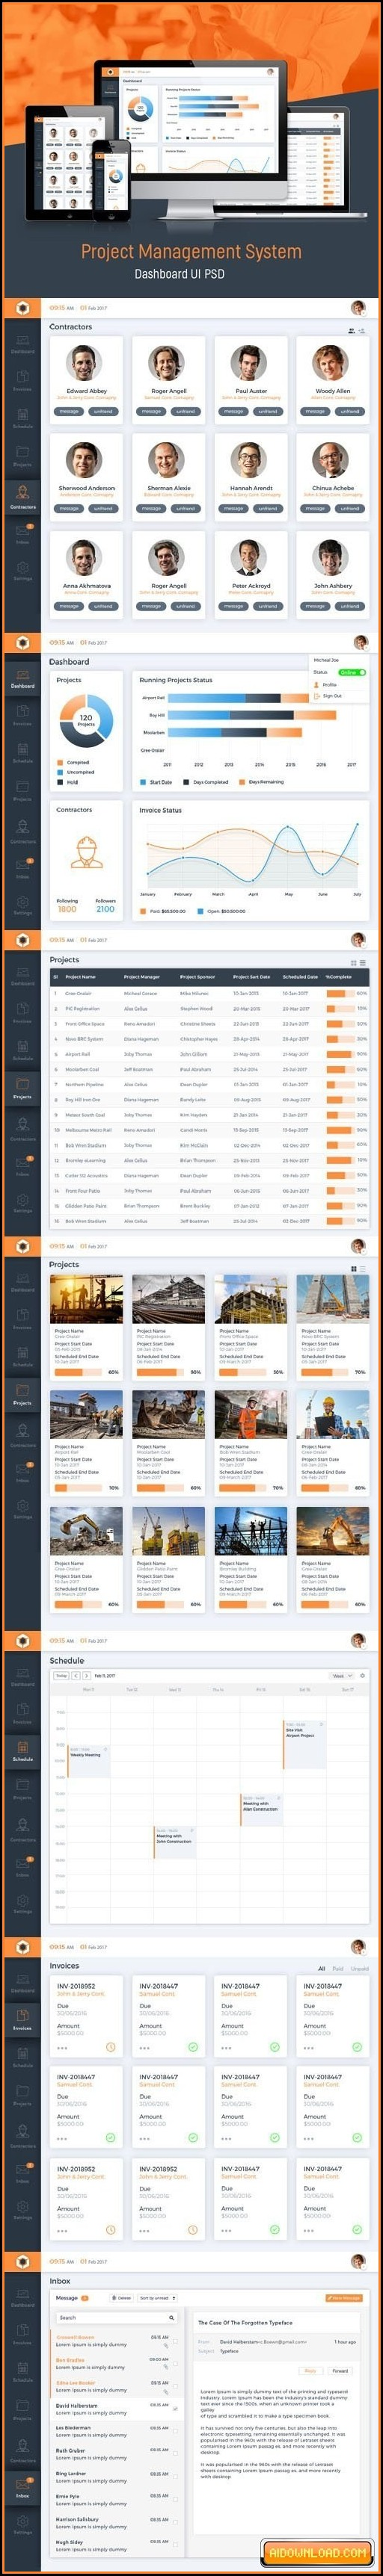 Project Management System Dashboard Gui Psd Templates